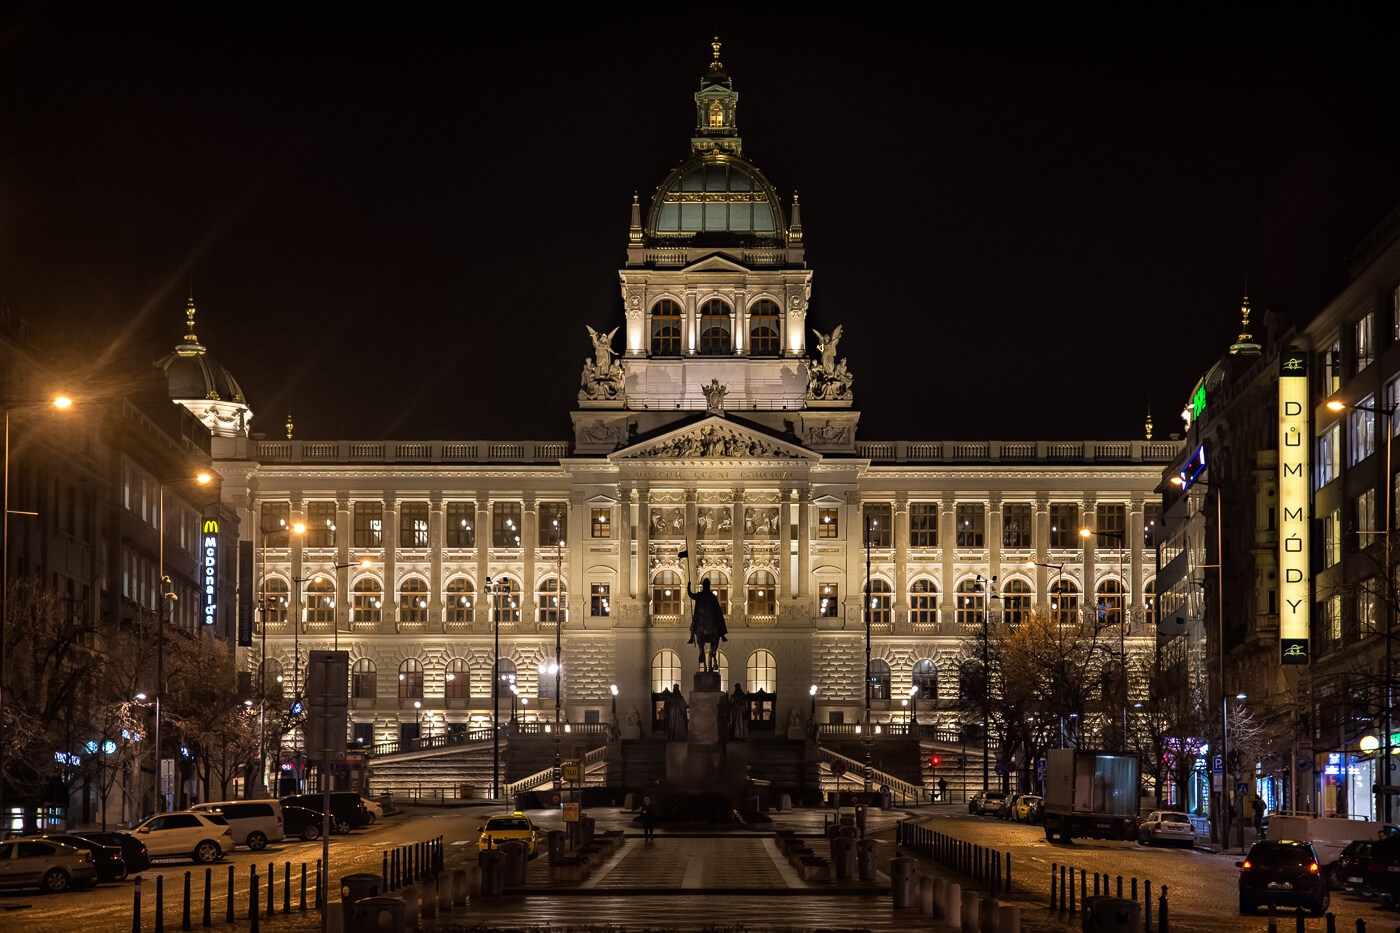 National Museum at the Wenceslas Square, Prague - Photograph by Zdenek Sindelar / CuriousZed